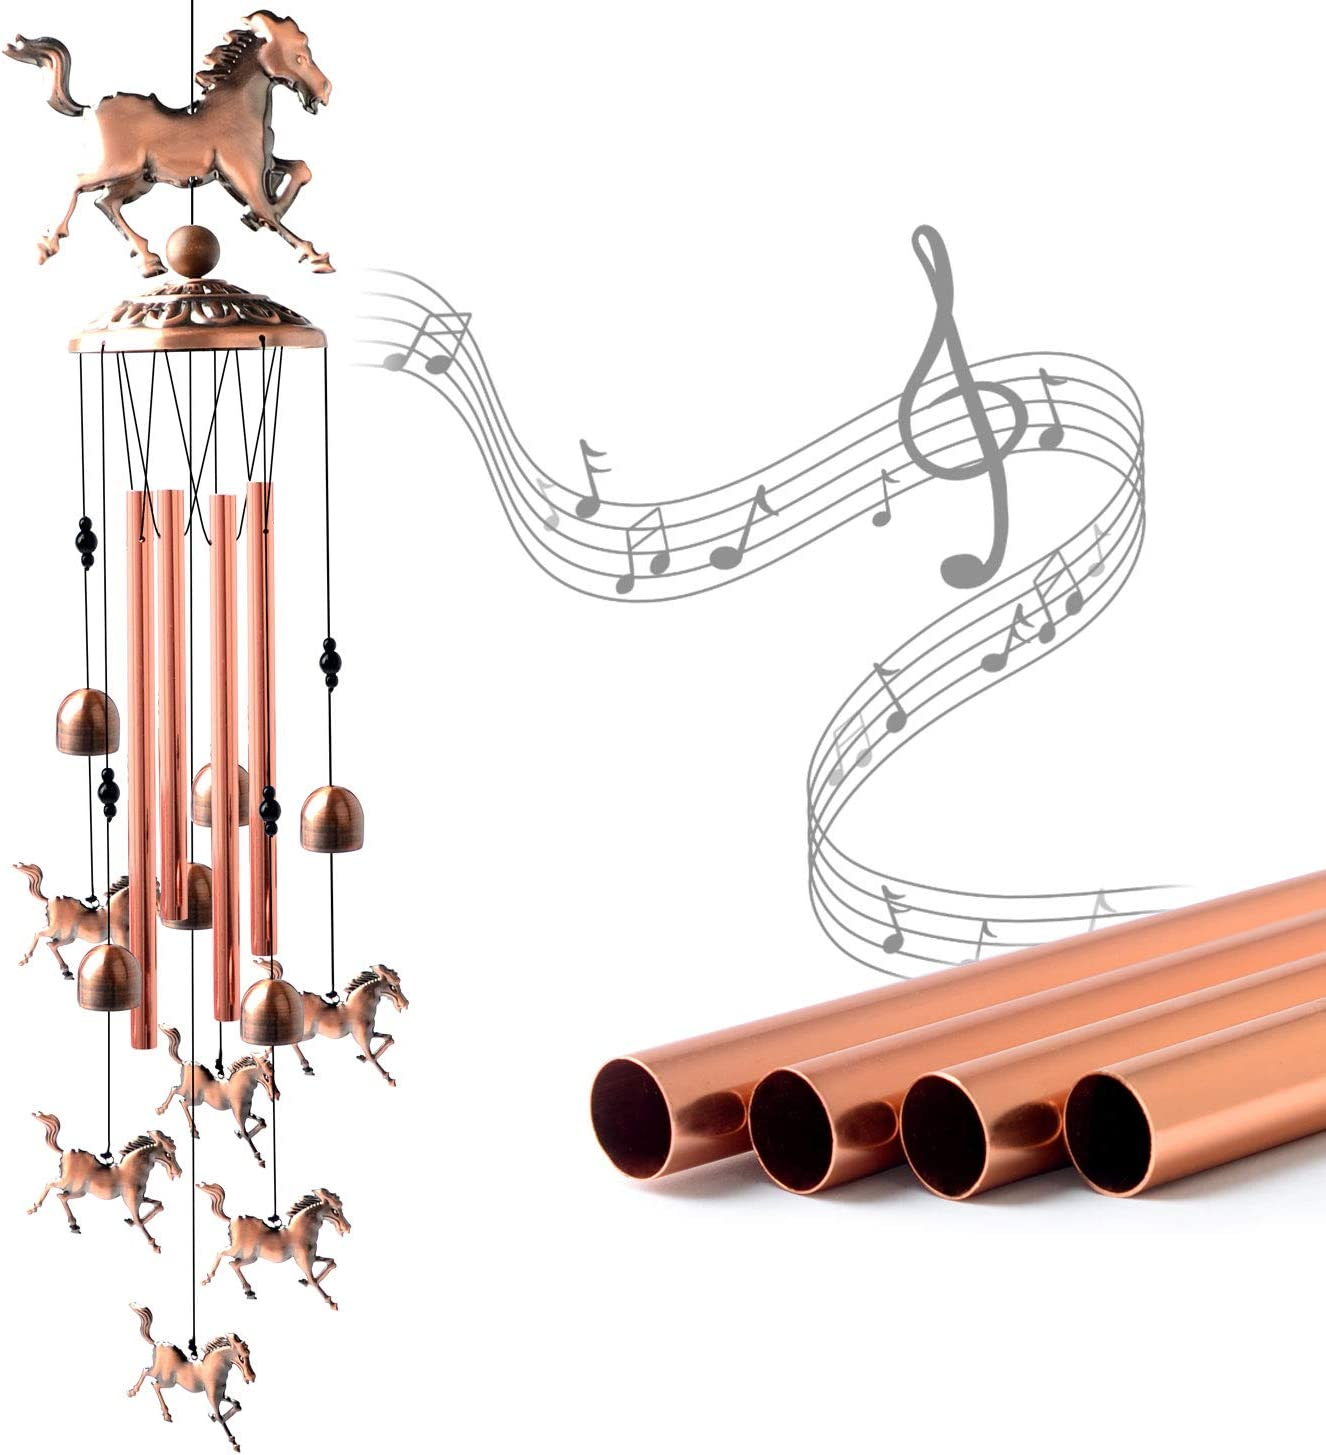 JOBOSI Horse Wind Chimes, Copper Wind Chime, Wind Chimes Outdoor, Horse Gifts, Garden Decor, Yard Decor, Garden Gifts, Memorial Wind Chime, Luck Wind Chime, Gifts for Friends